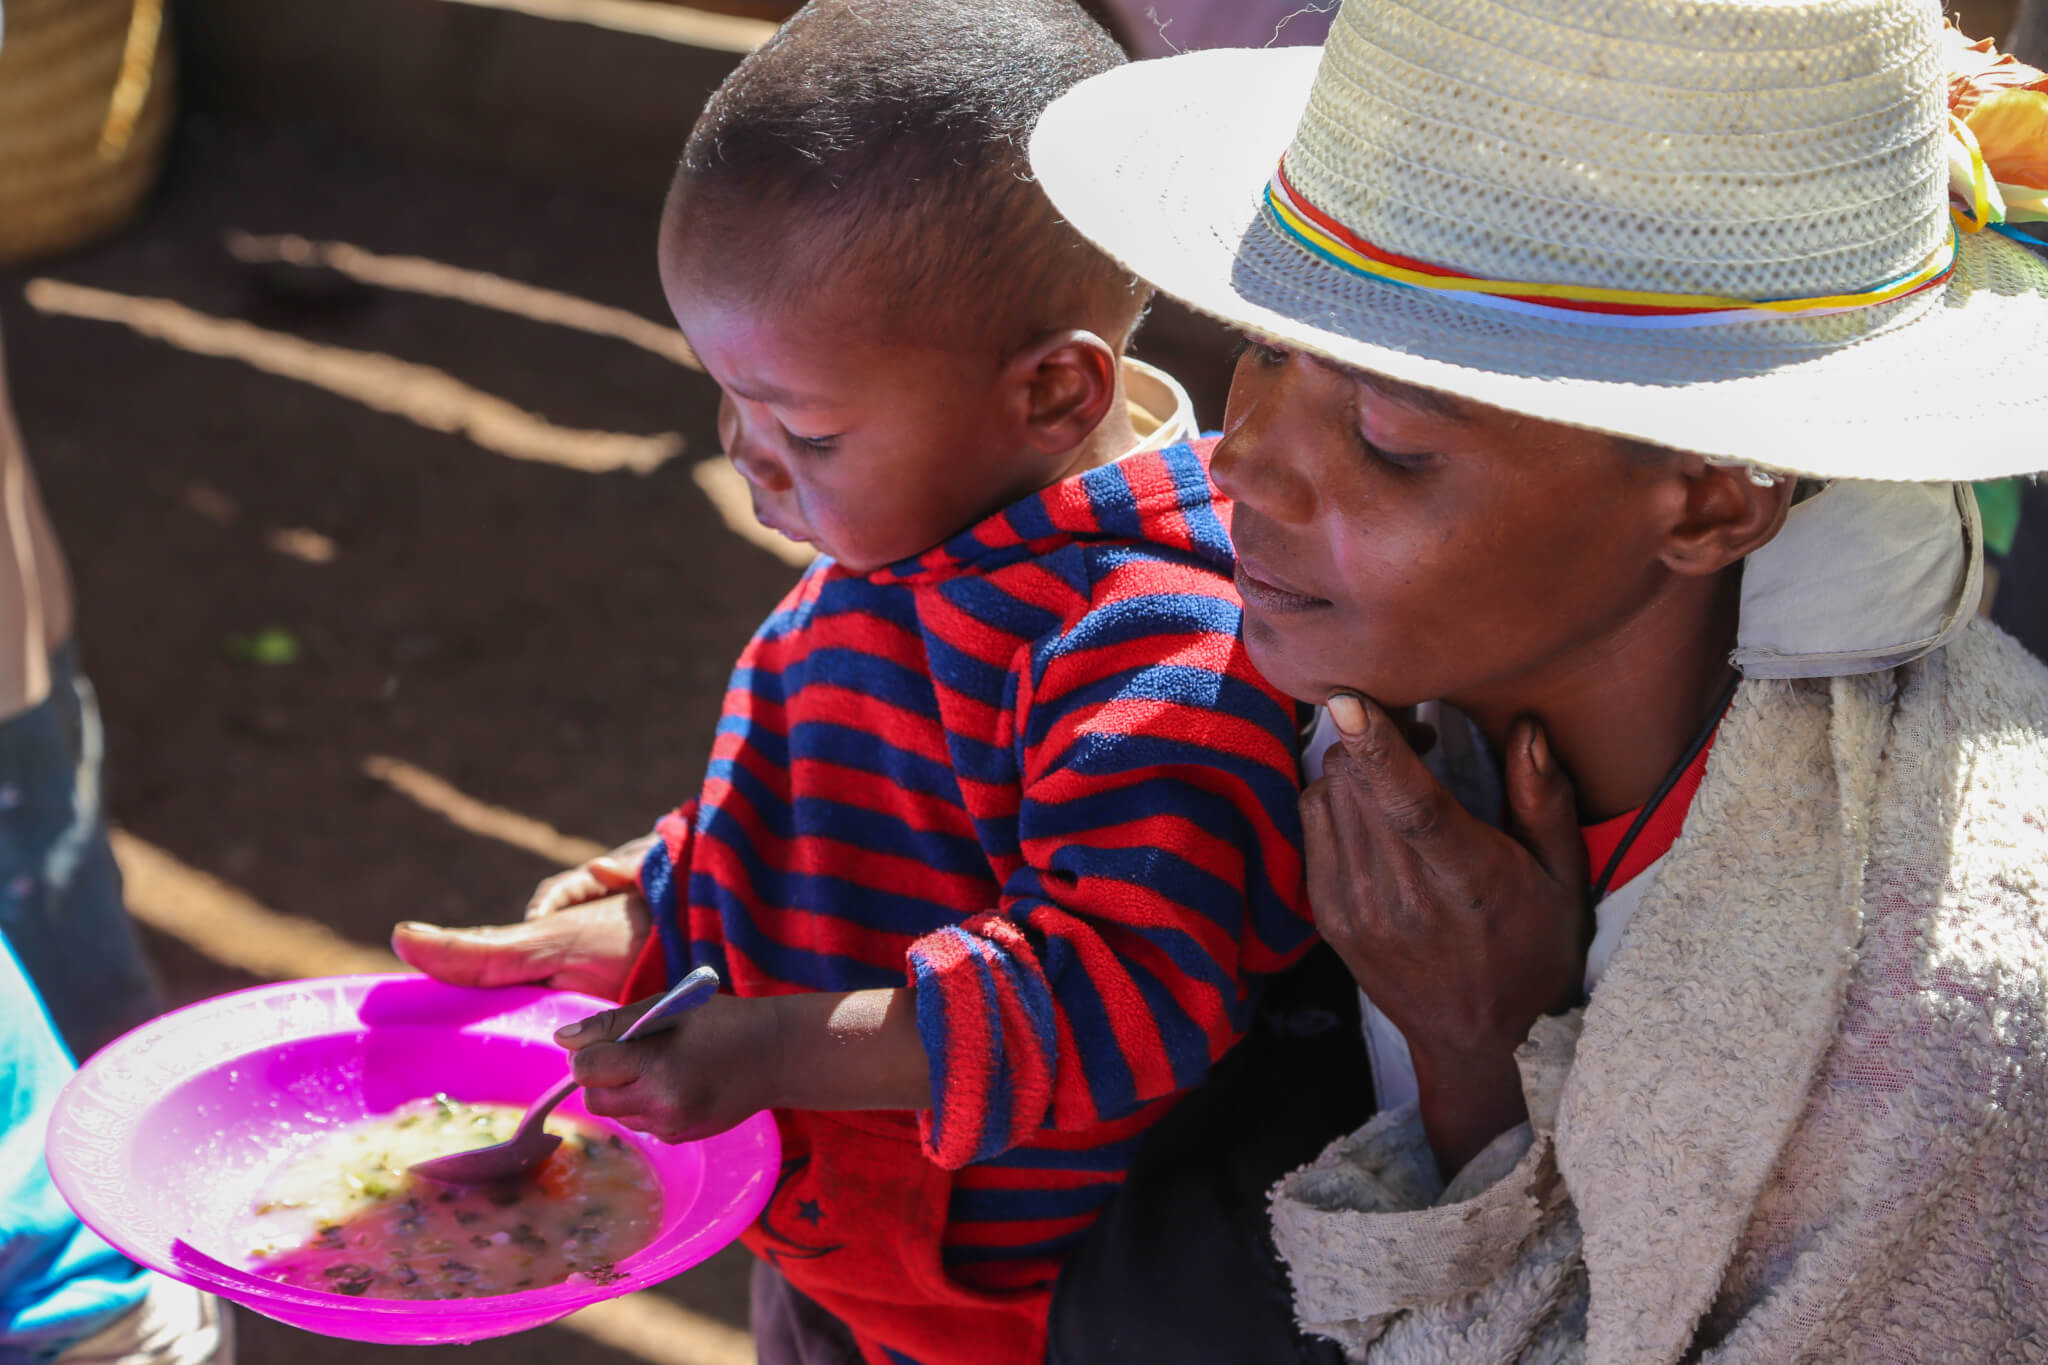 The Power of Nutrition is an innovative charitable foundation